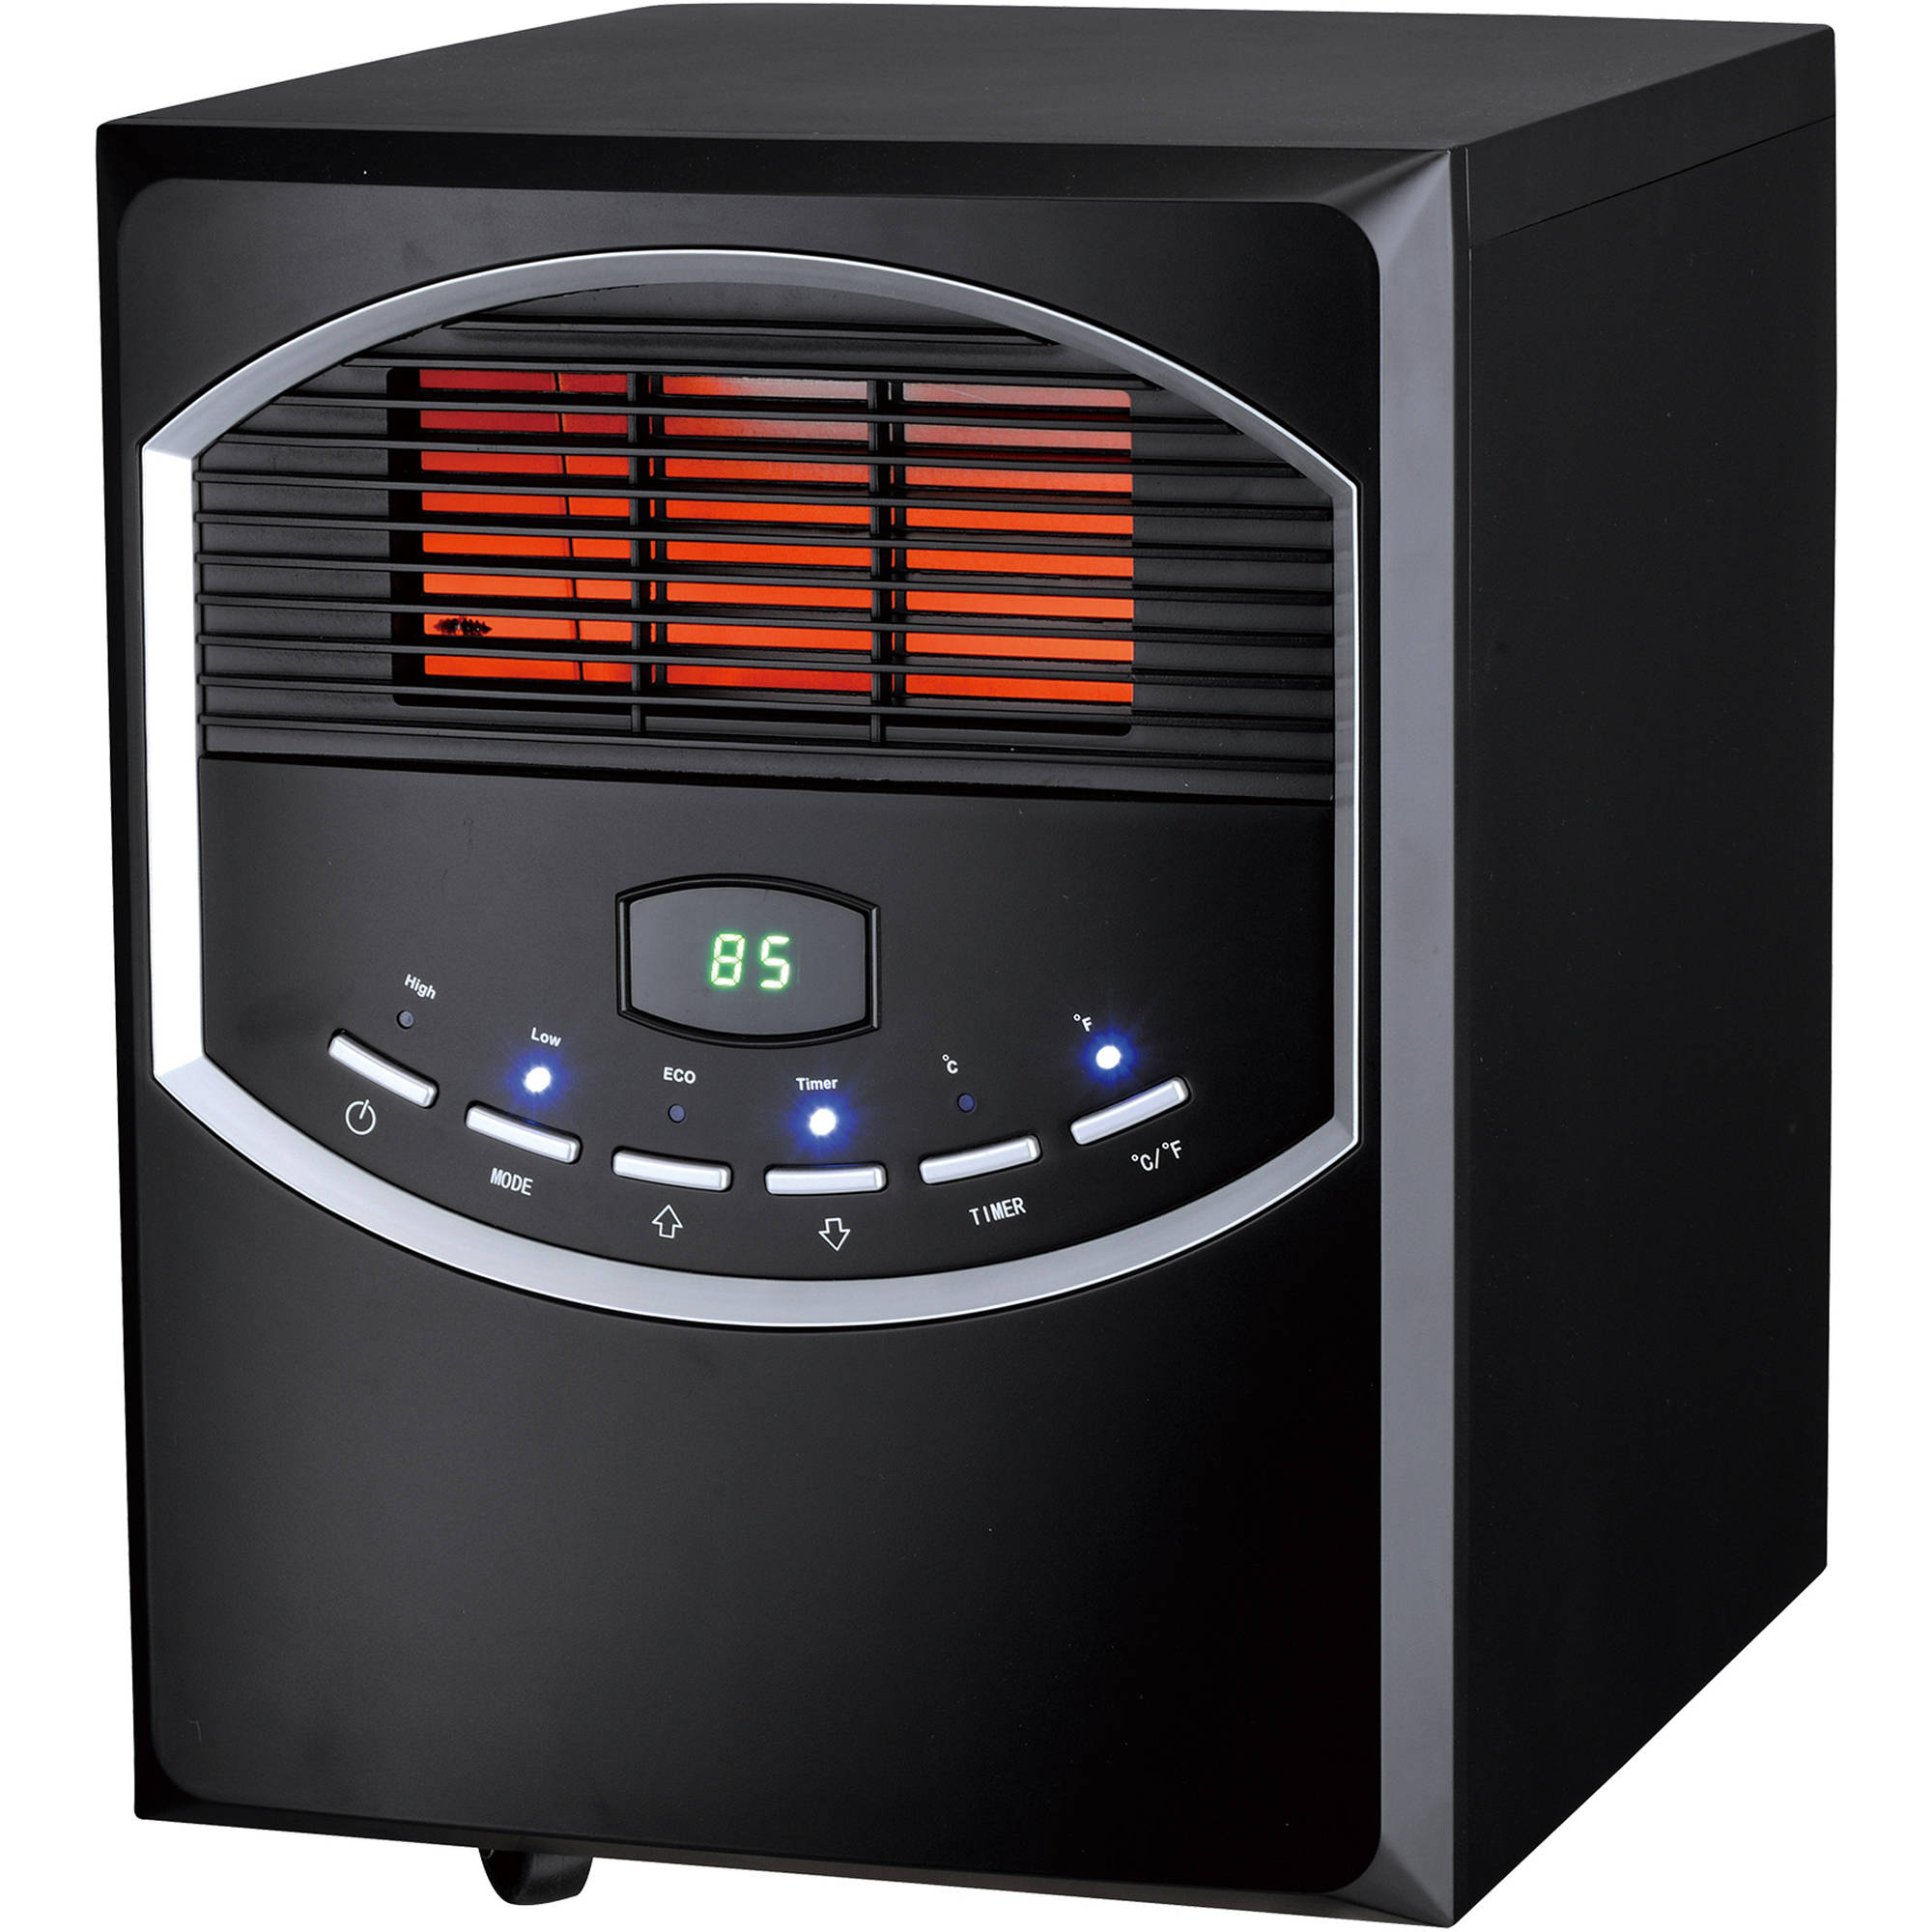 Soleil Infrared 4-Element Quartz Electric Room Heater with Remote, 750/1500 Watt, Black Metal Cabinet with Wheels PH-91S